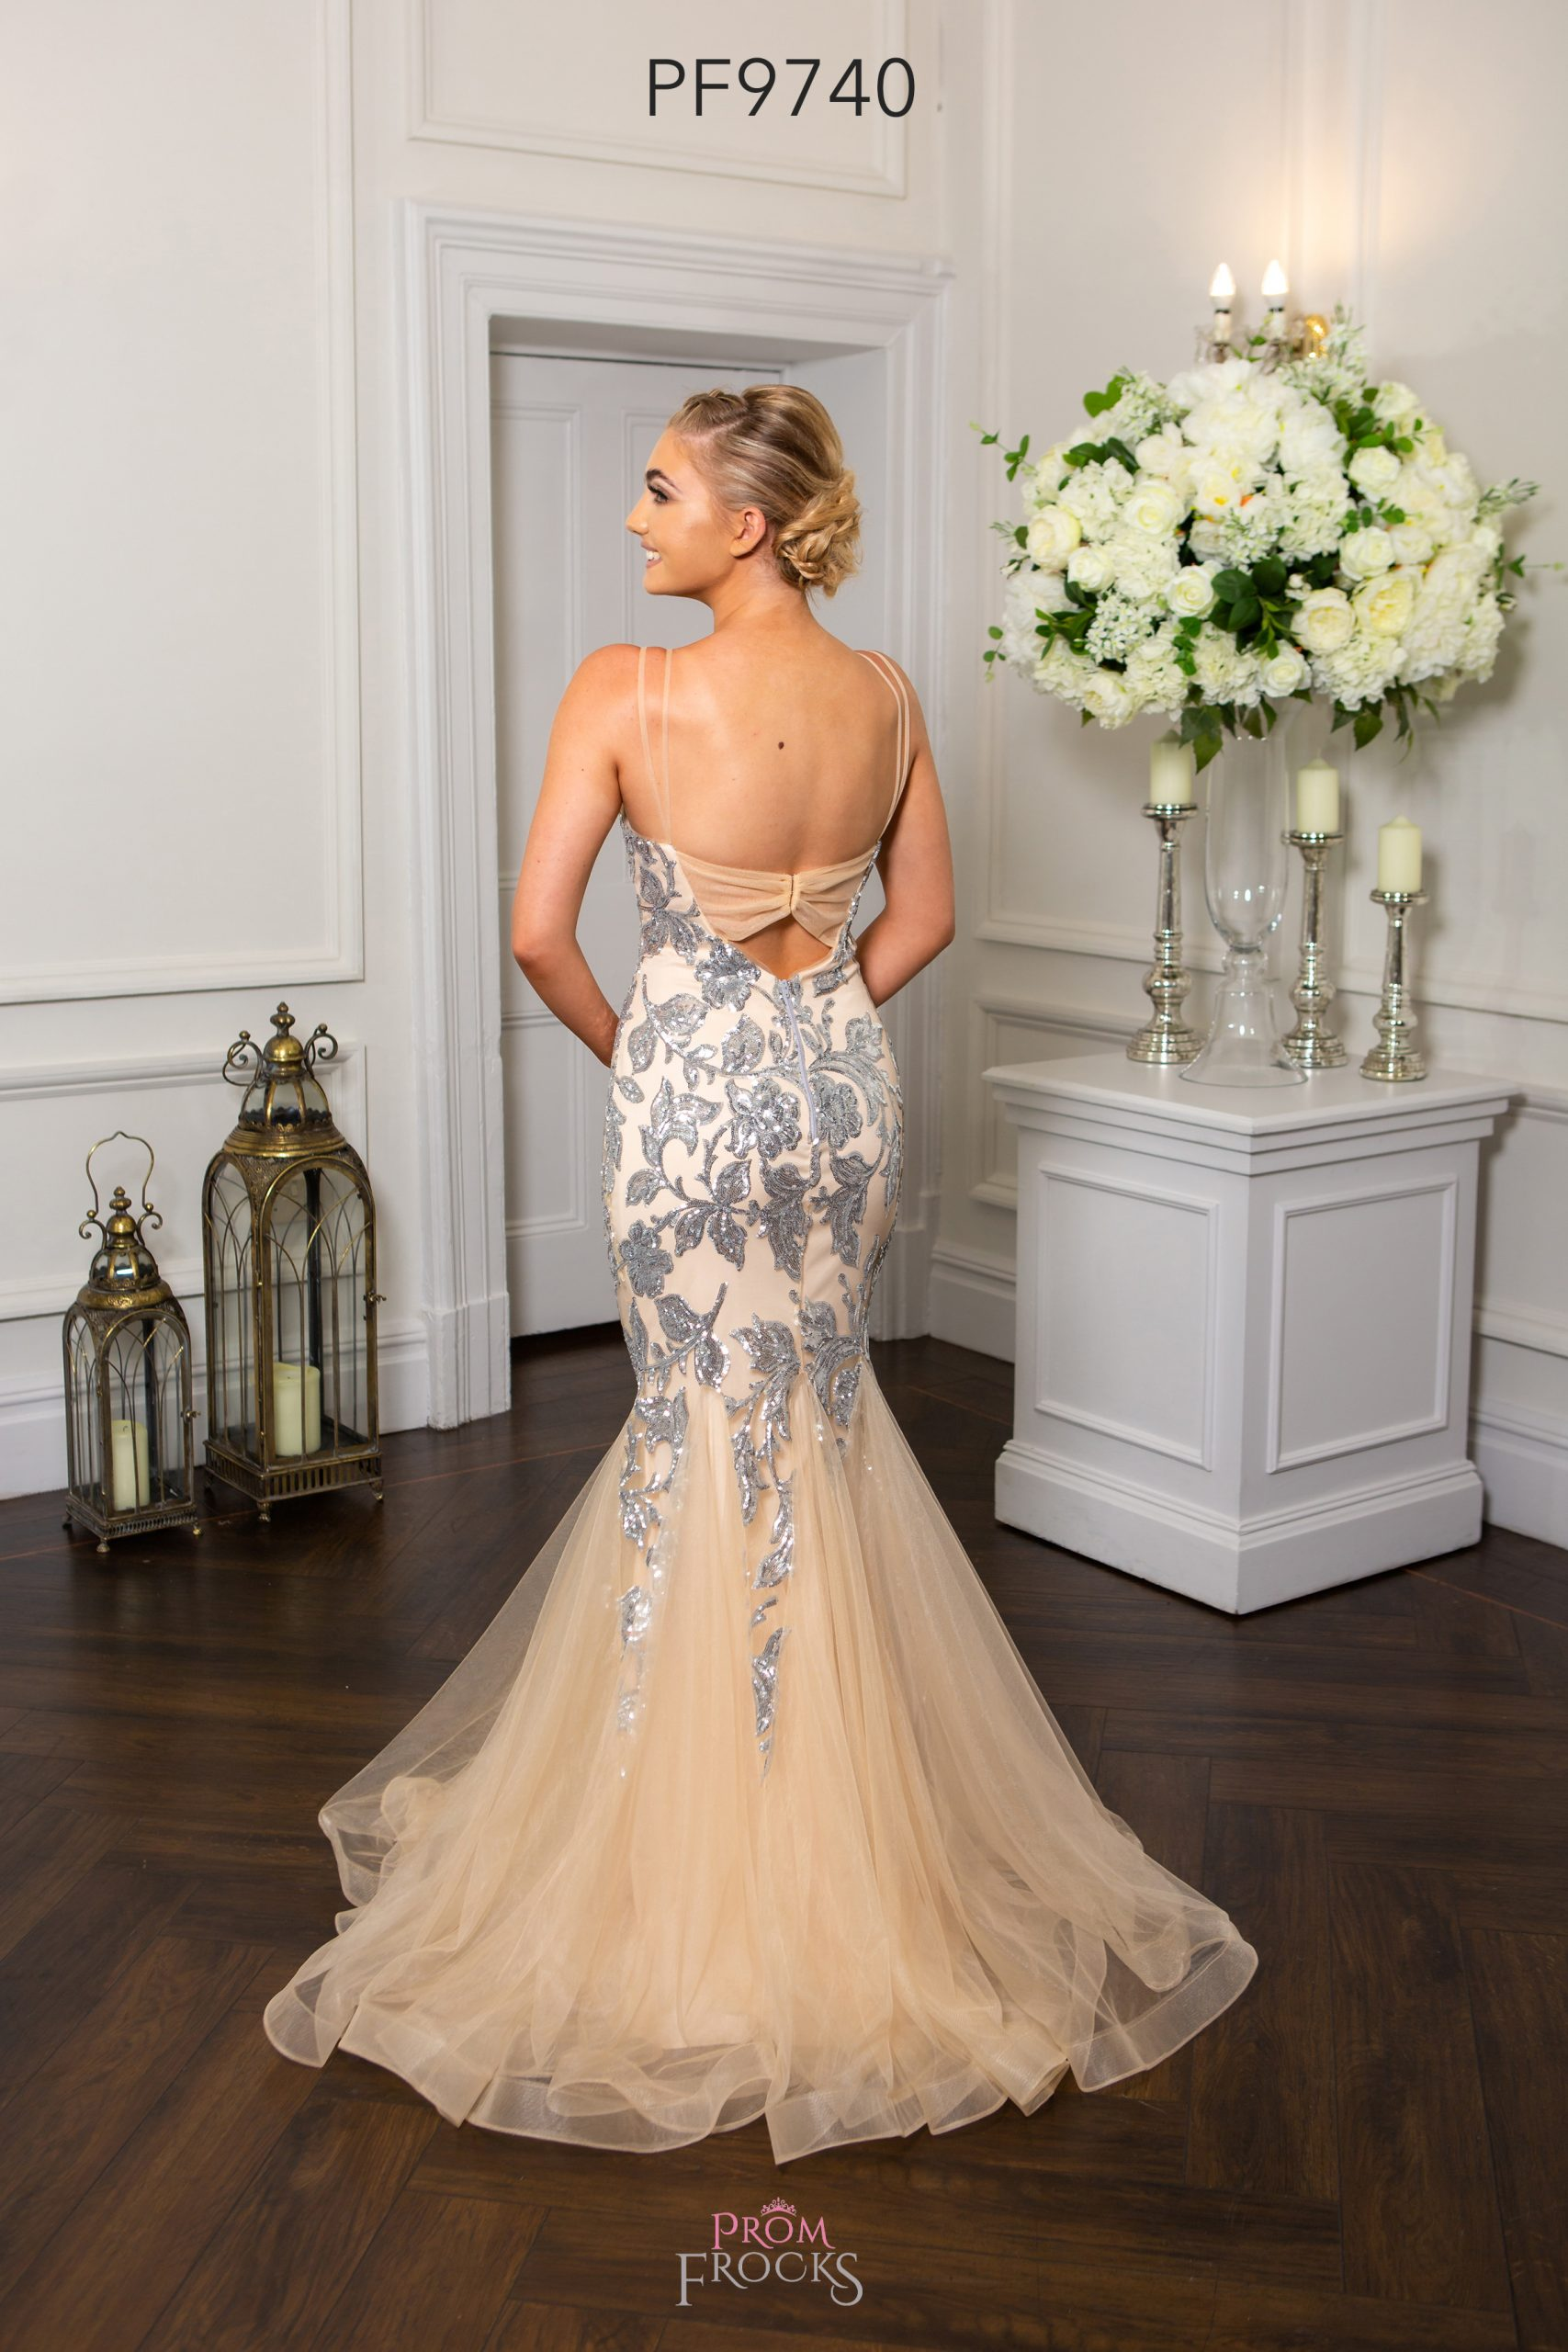 PF9665 Nude Pink Sparkle Prom/Evening Dress - Prom Frocks